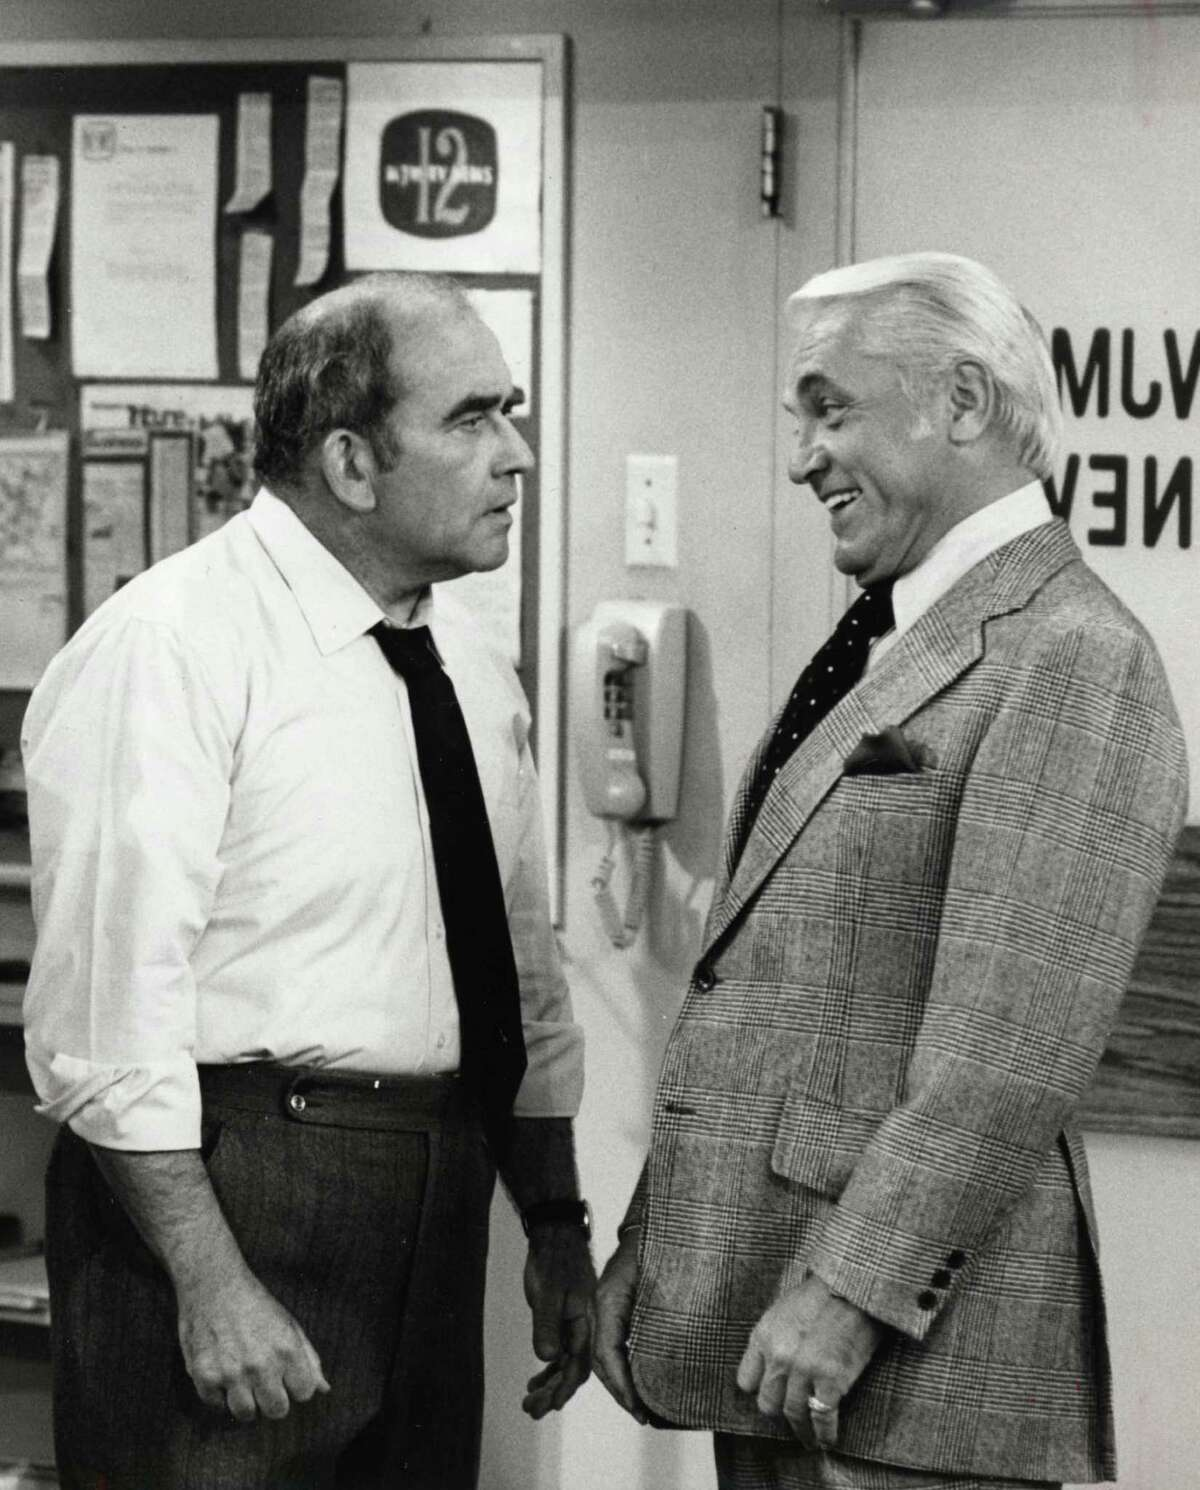 Break But he caught his big break in 1970 when he was cast as the boss, Lou Grant, on